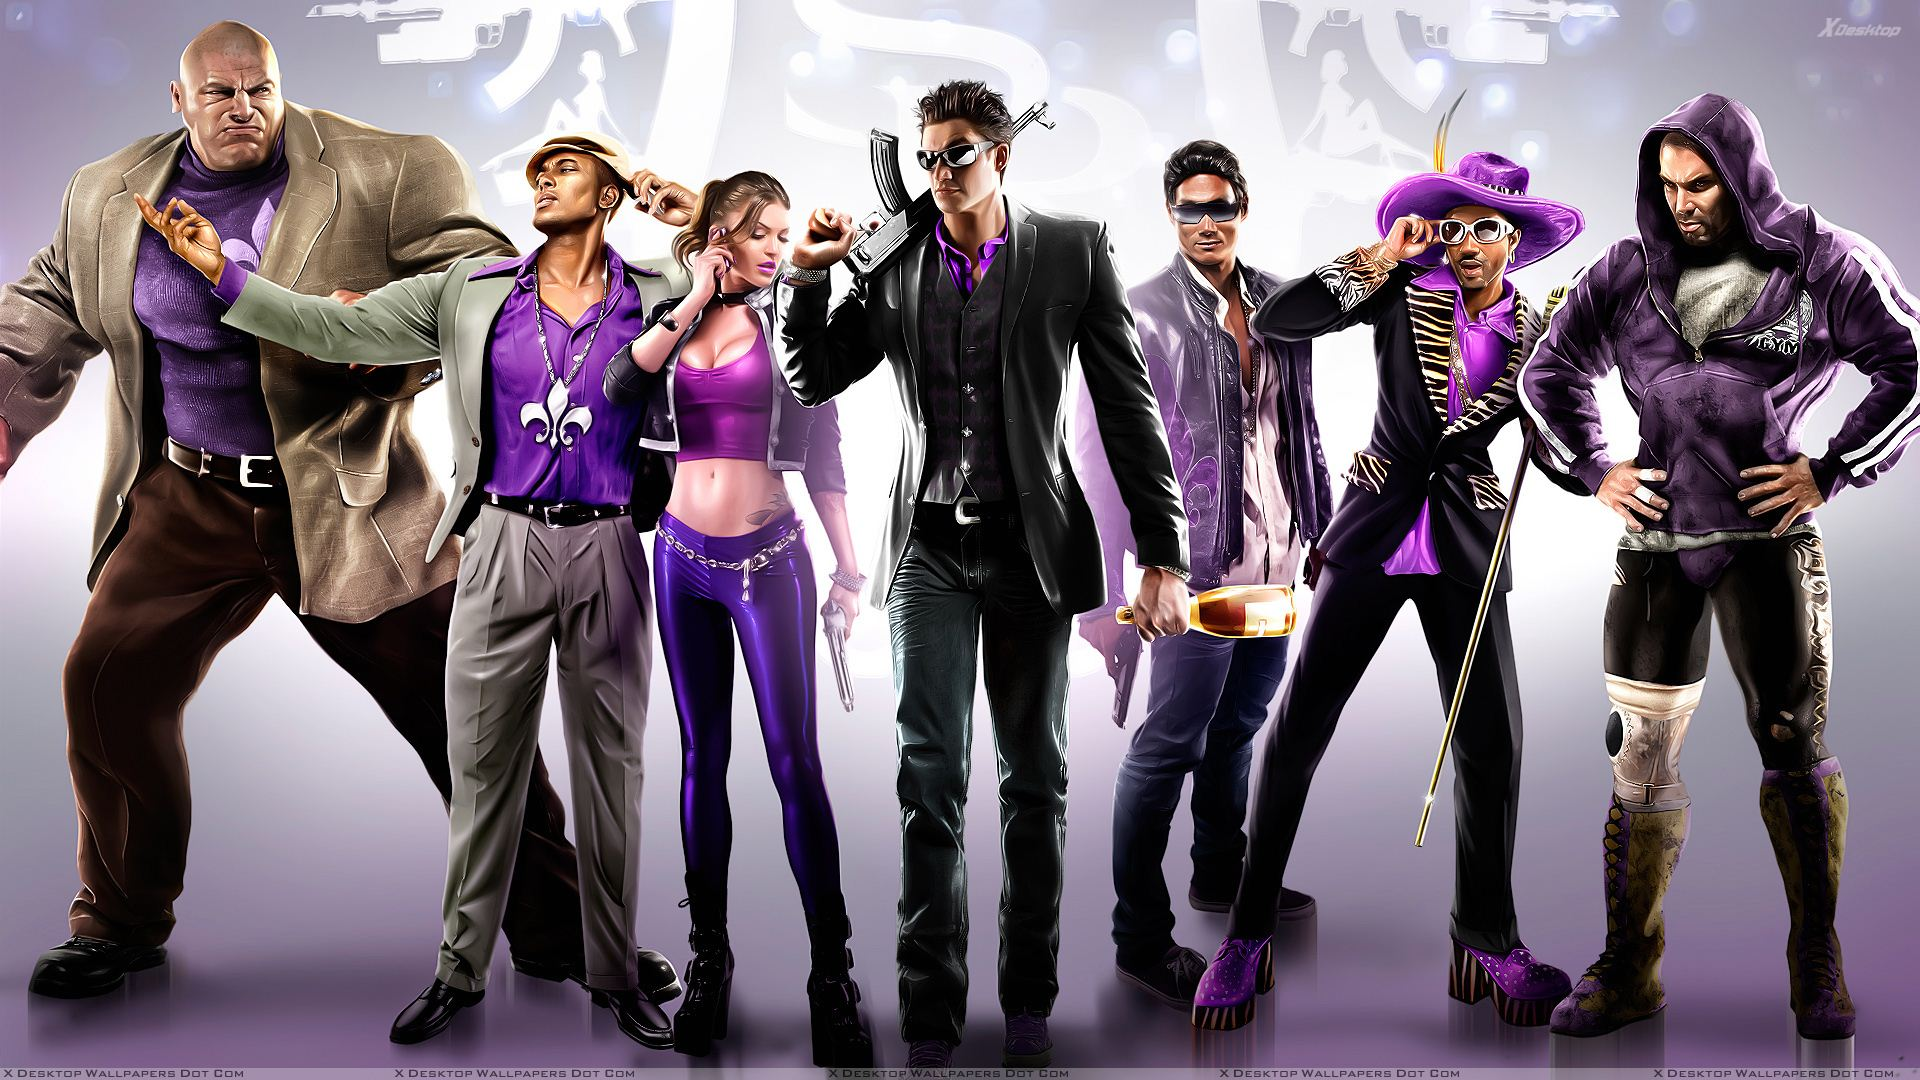 Saints row the third windows 7 theme with purple wallpapers.